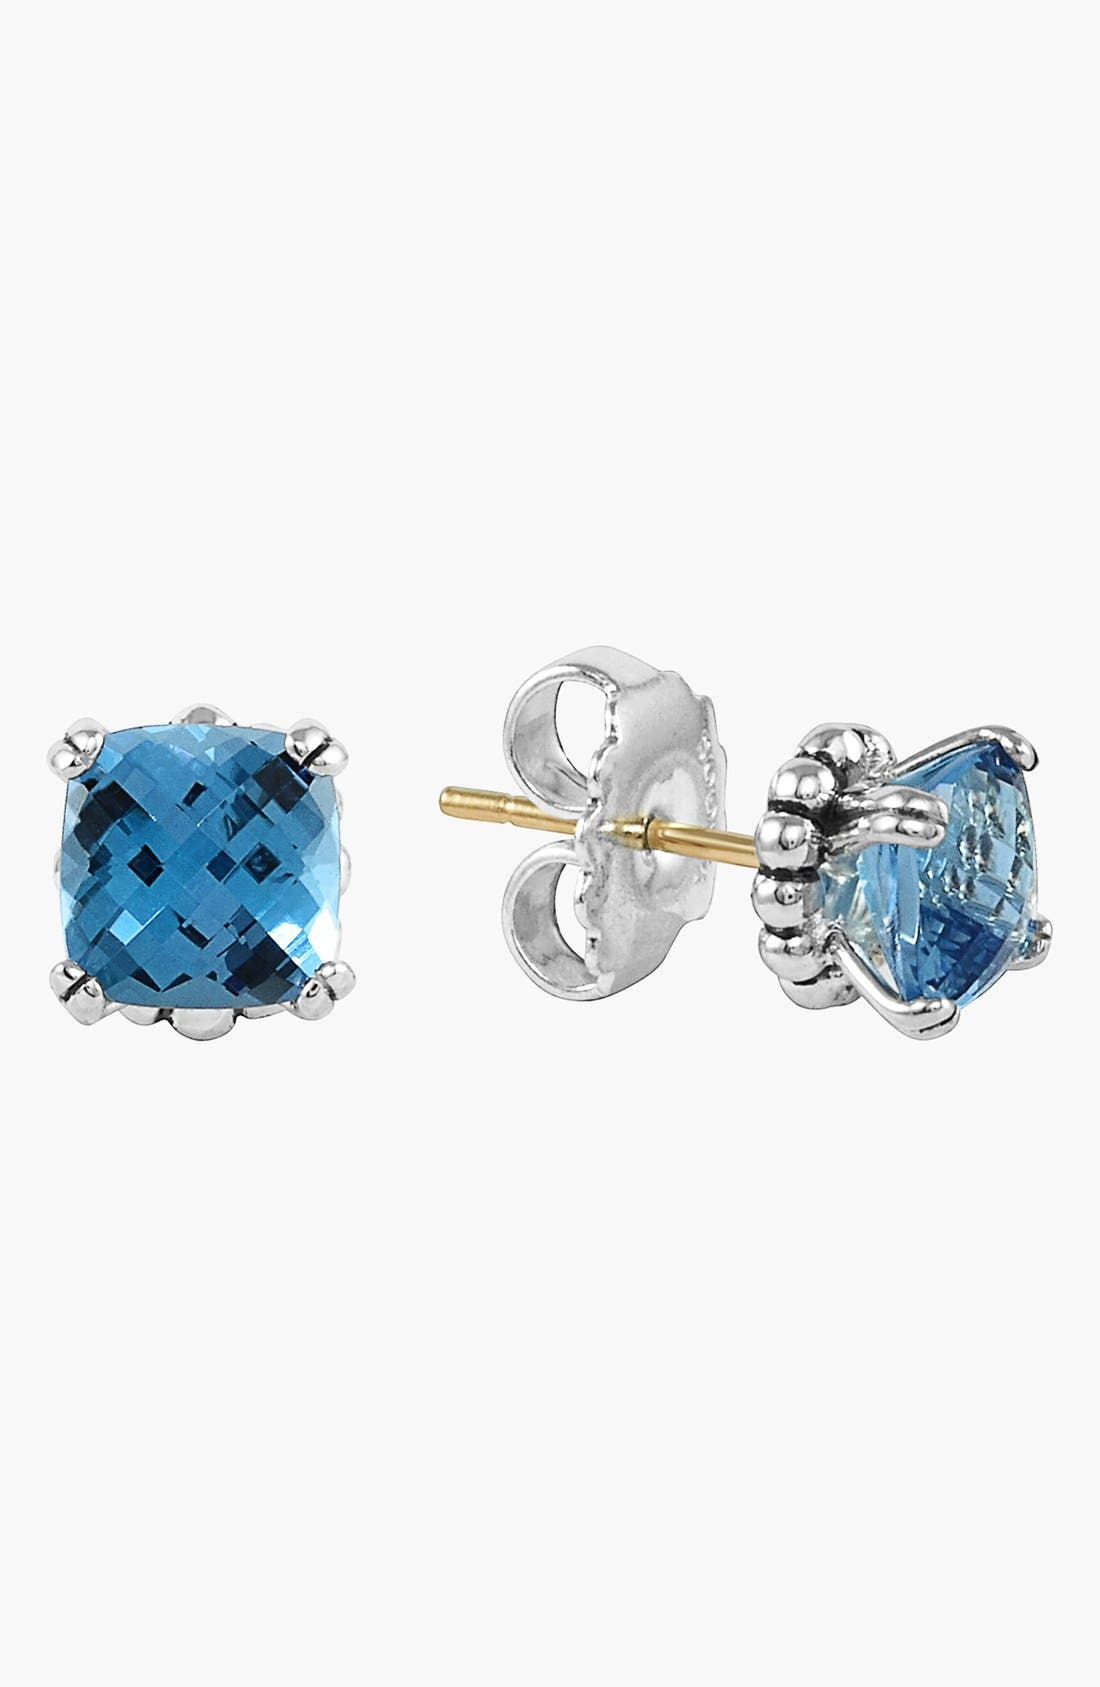 'Prism' Stud Earrings,                             Alternate thumbnail 5, color,                             SILVER/ BLUE TOPAZ